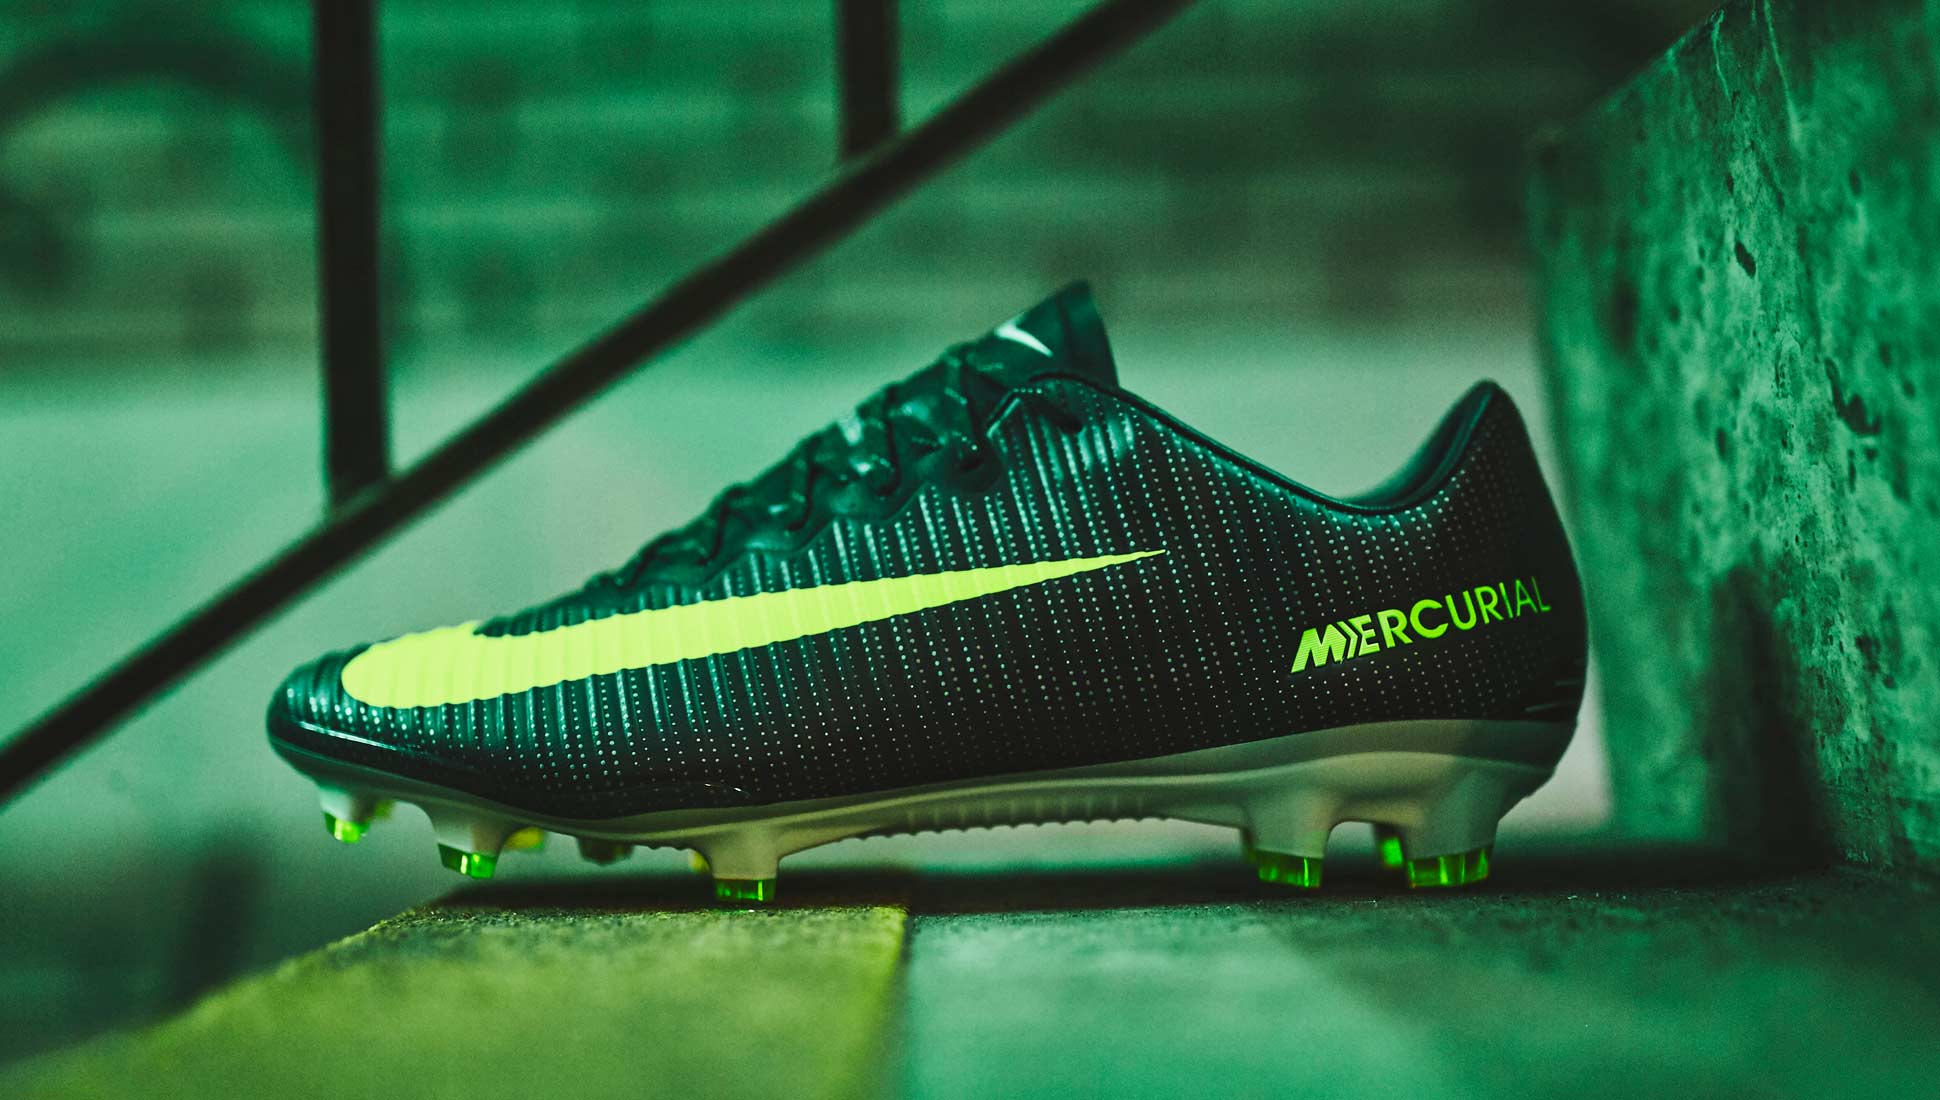 708a193480b Nike Mercurial CR7 Chapter 3  Discovery - SoccerBible